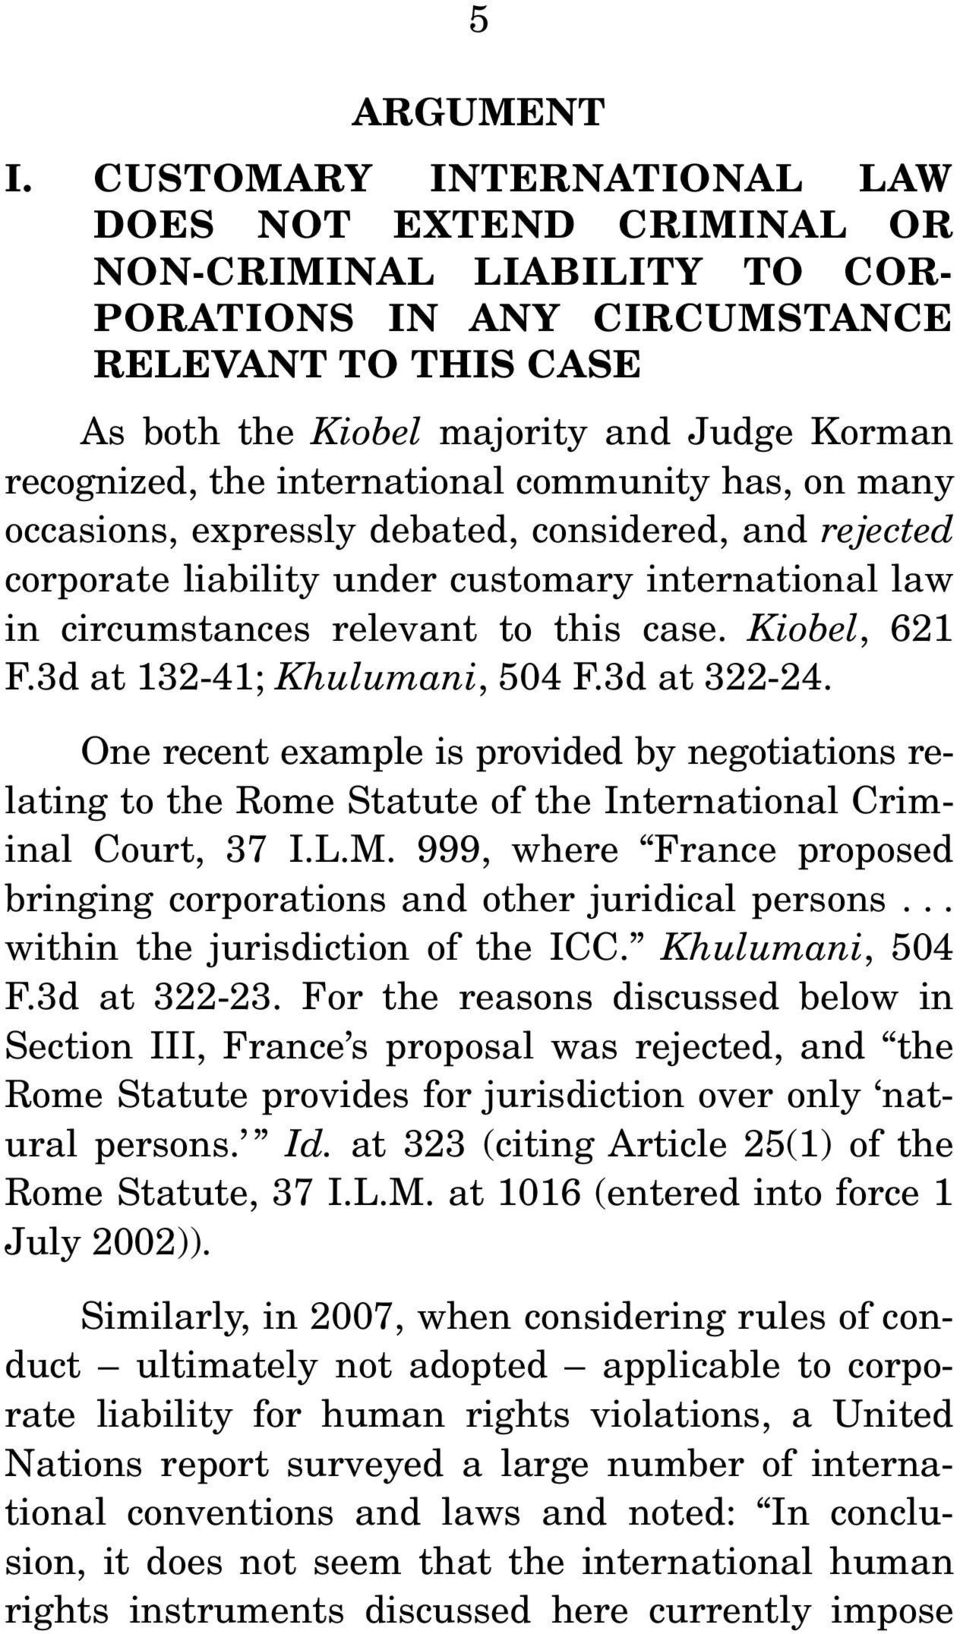 international community has, on many occasions, expressly debated, considered, and rejected corporate liability under customary international law in circumstances relevant to this case. Kiobel, 621 F.